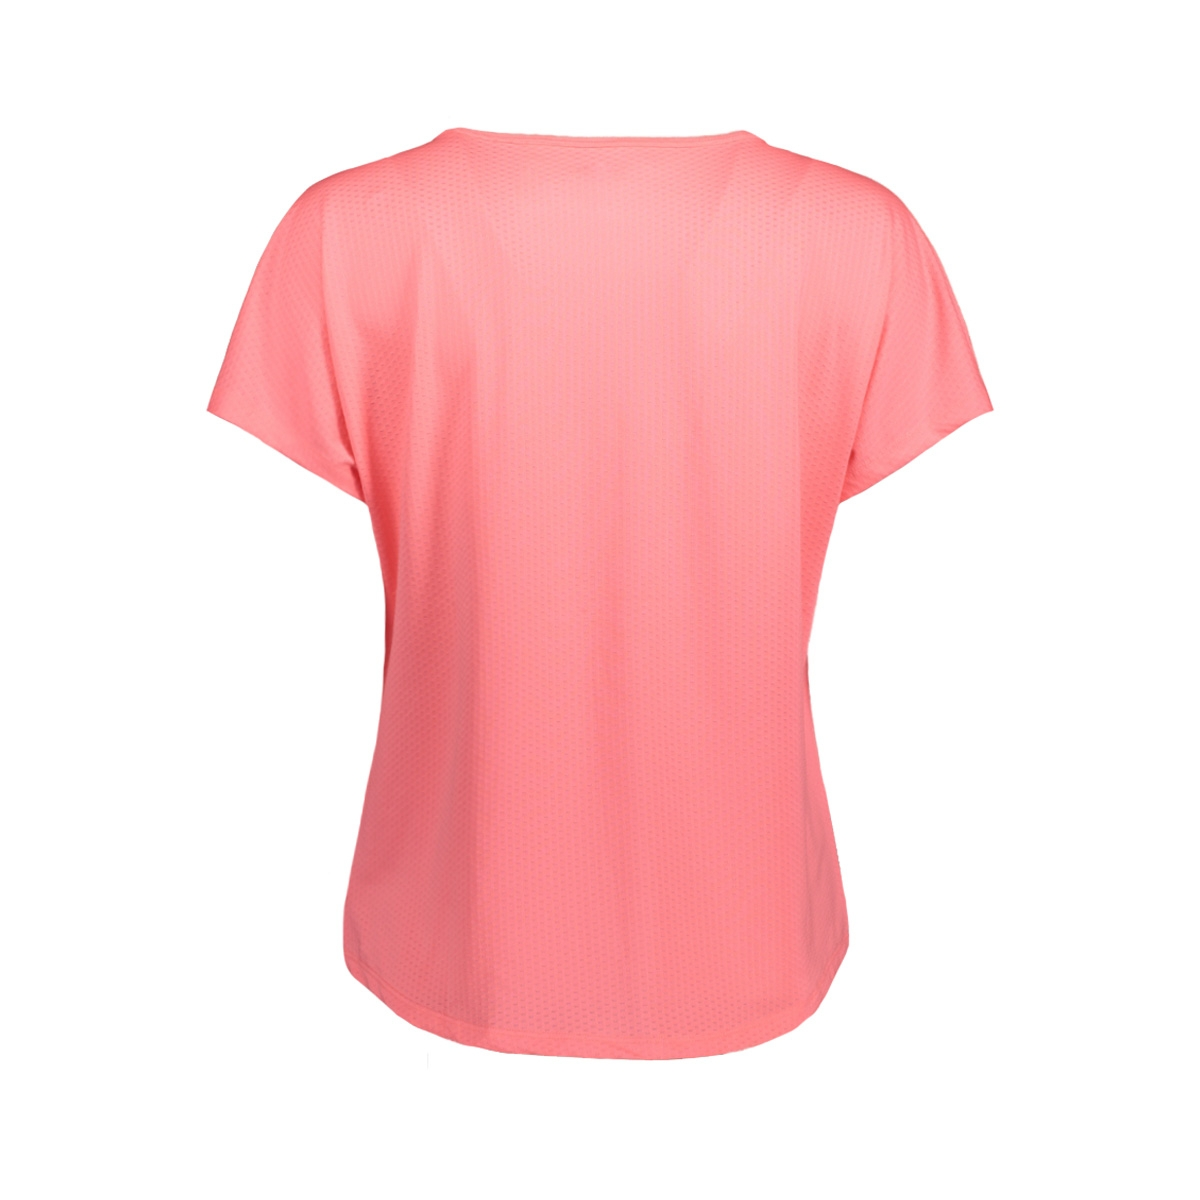 onpvineda short training tee prs 15139517 only play sport shirt lipstick pink